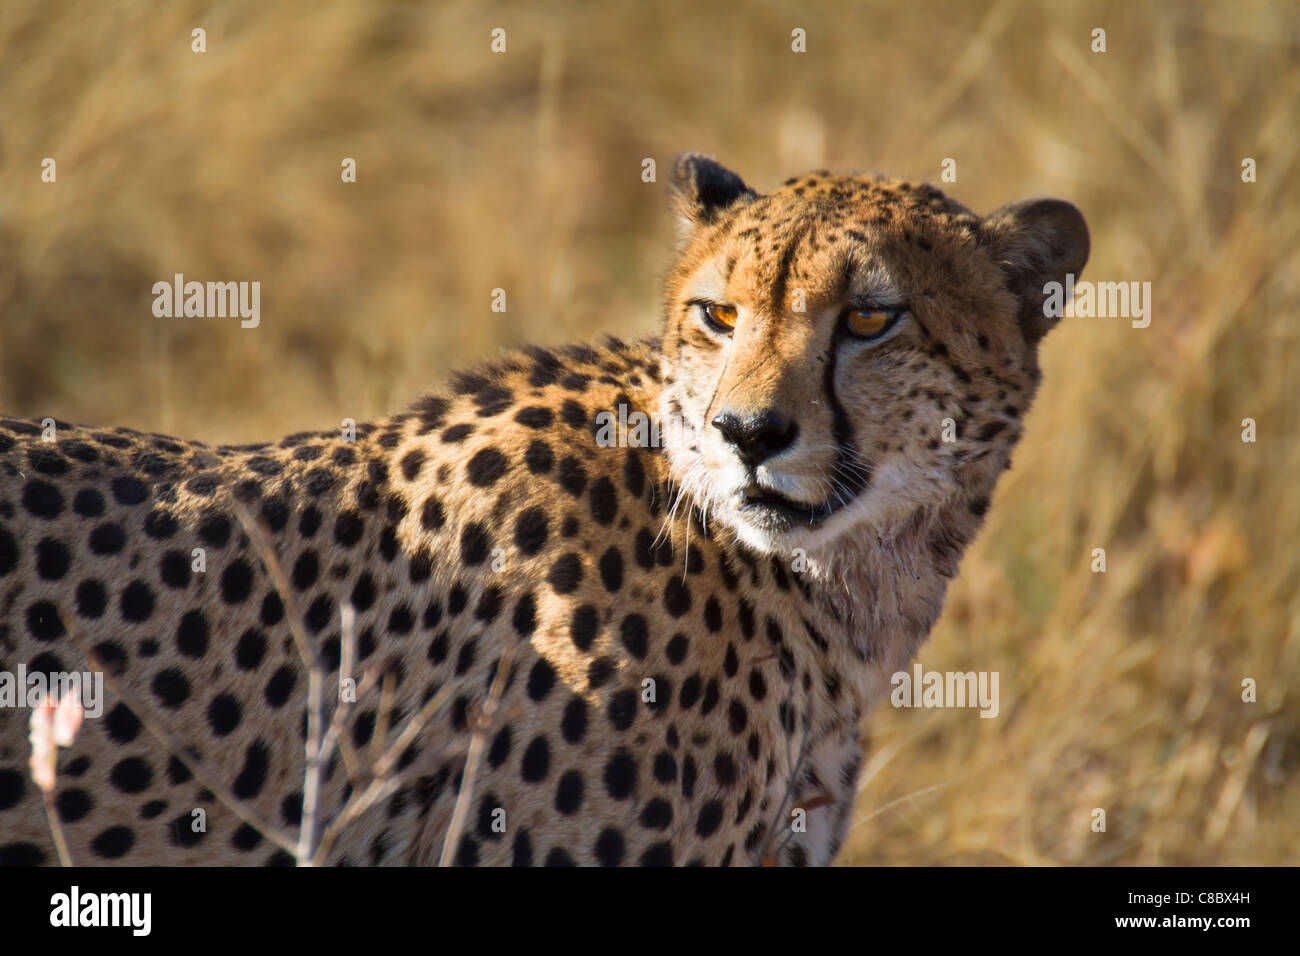 cheetah in Hwange National Park, Zimbabwe - Stock Image